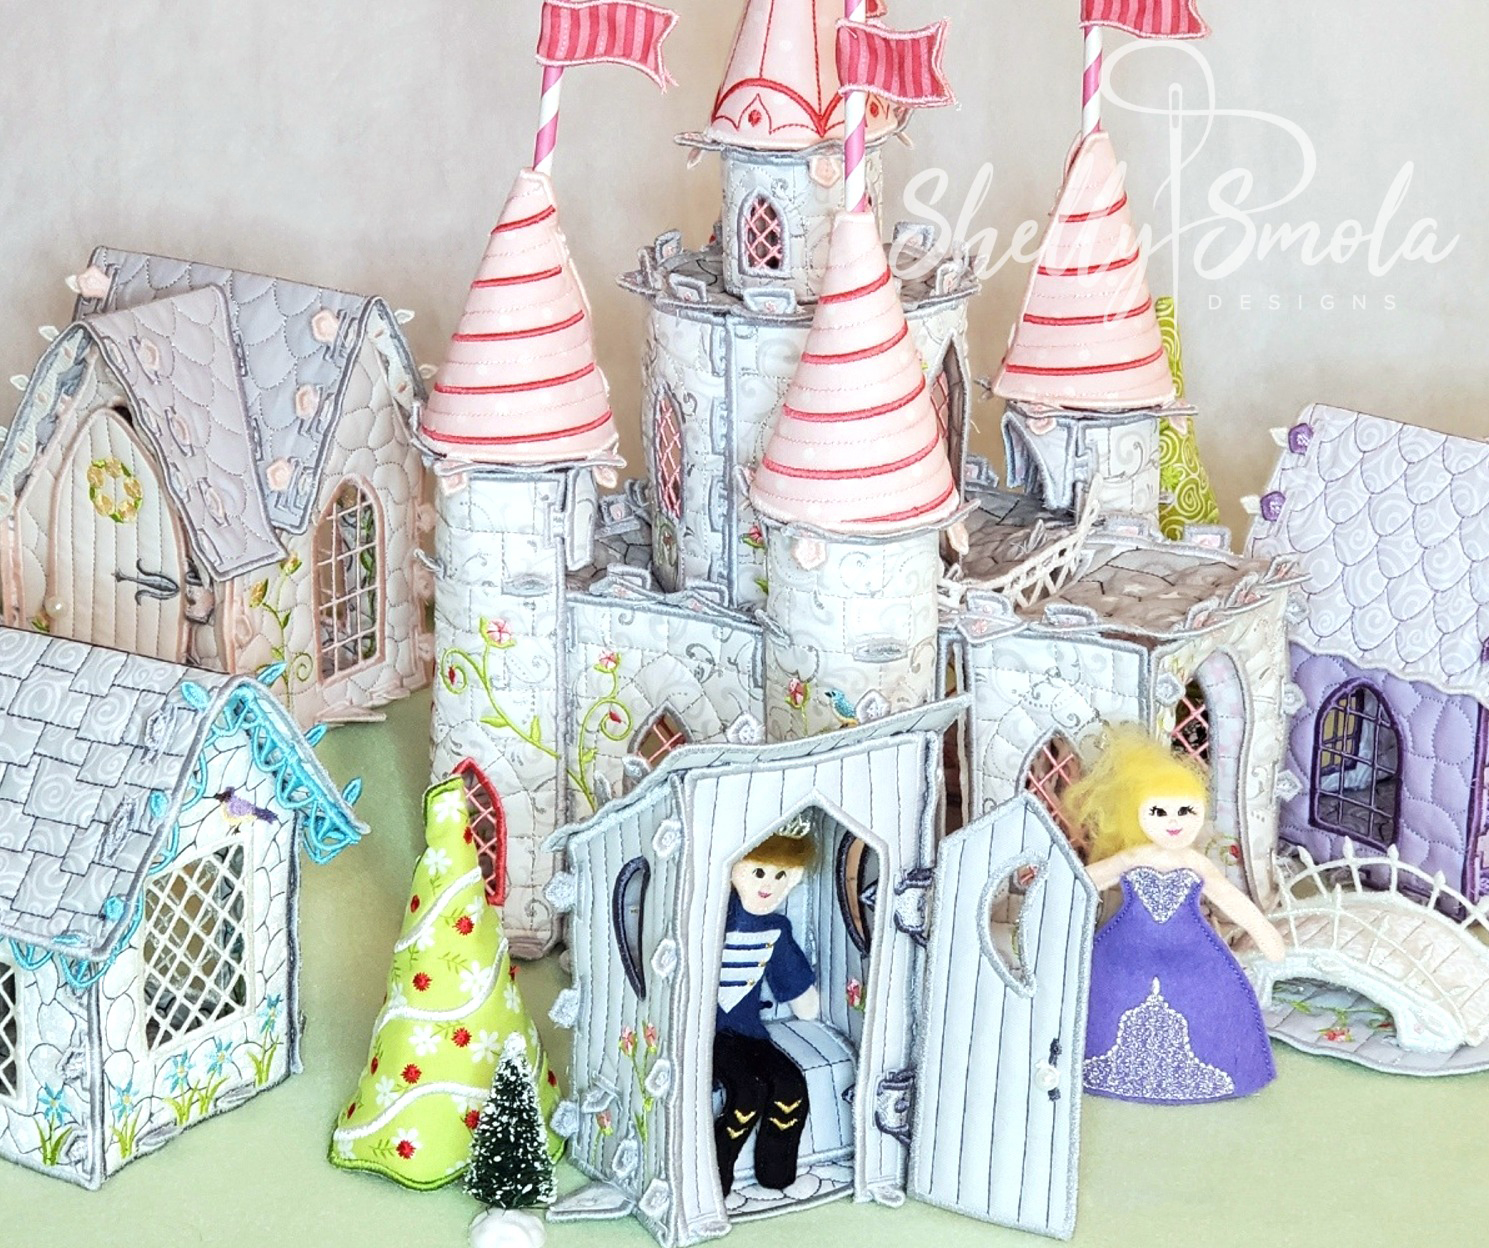 Once Upon a Time Collection by Shelly Smola